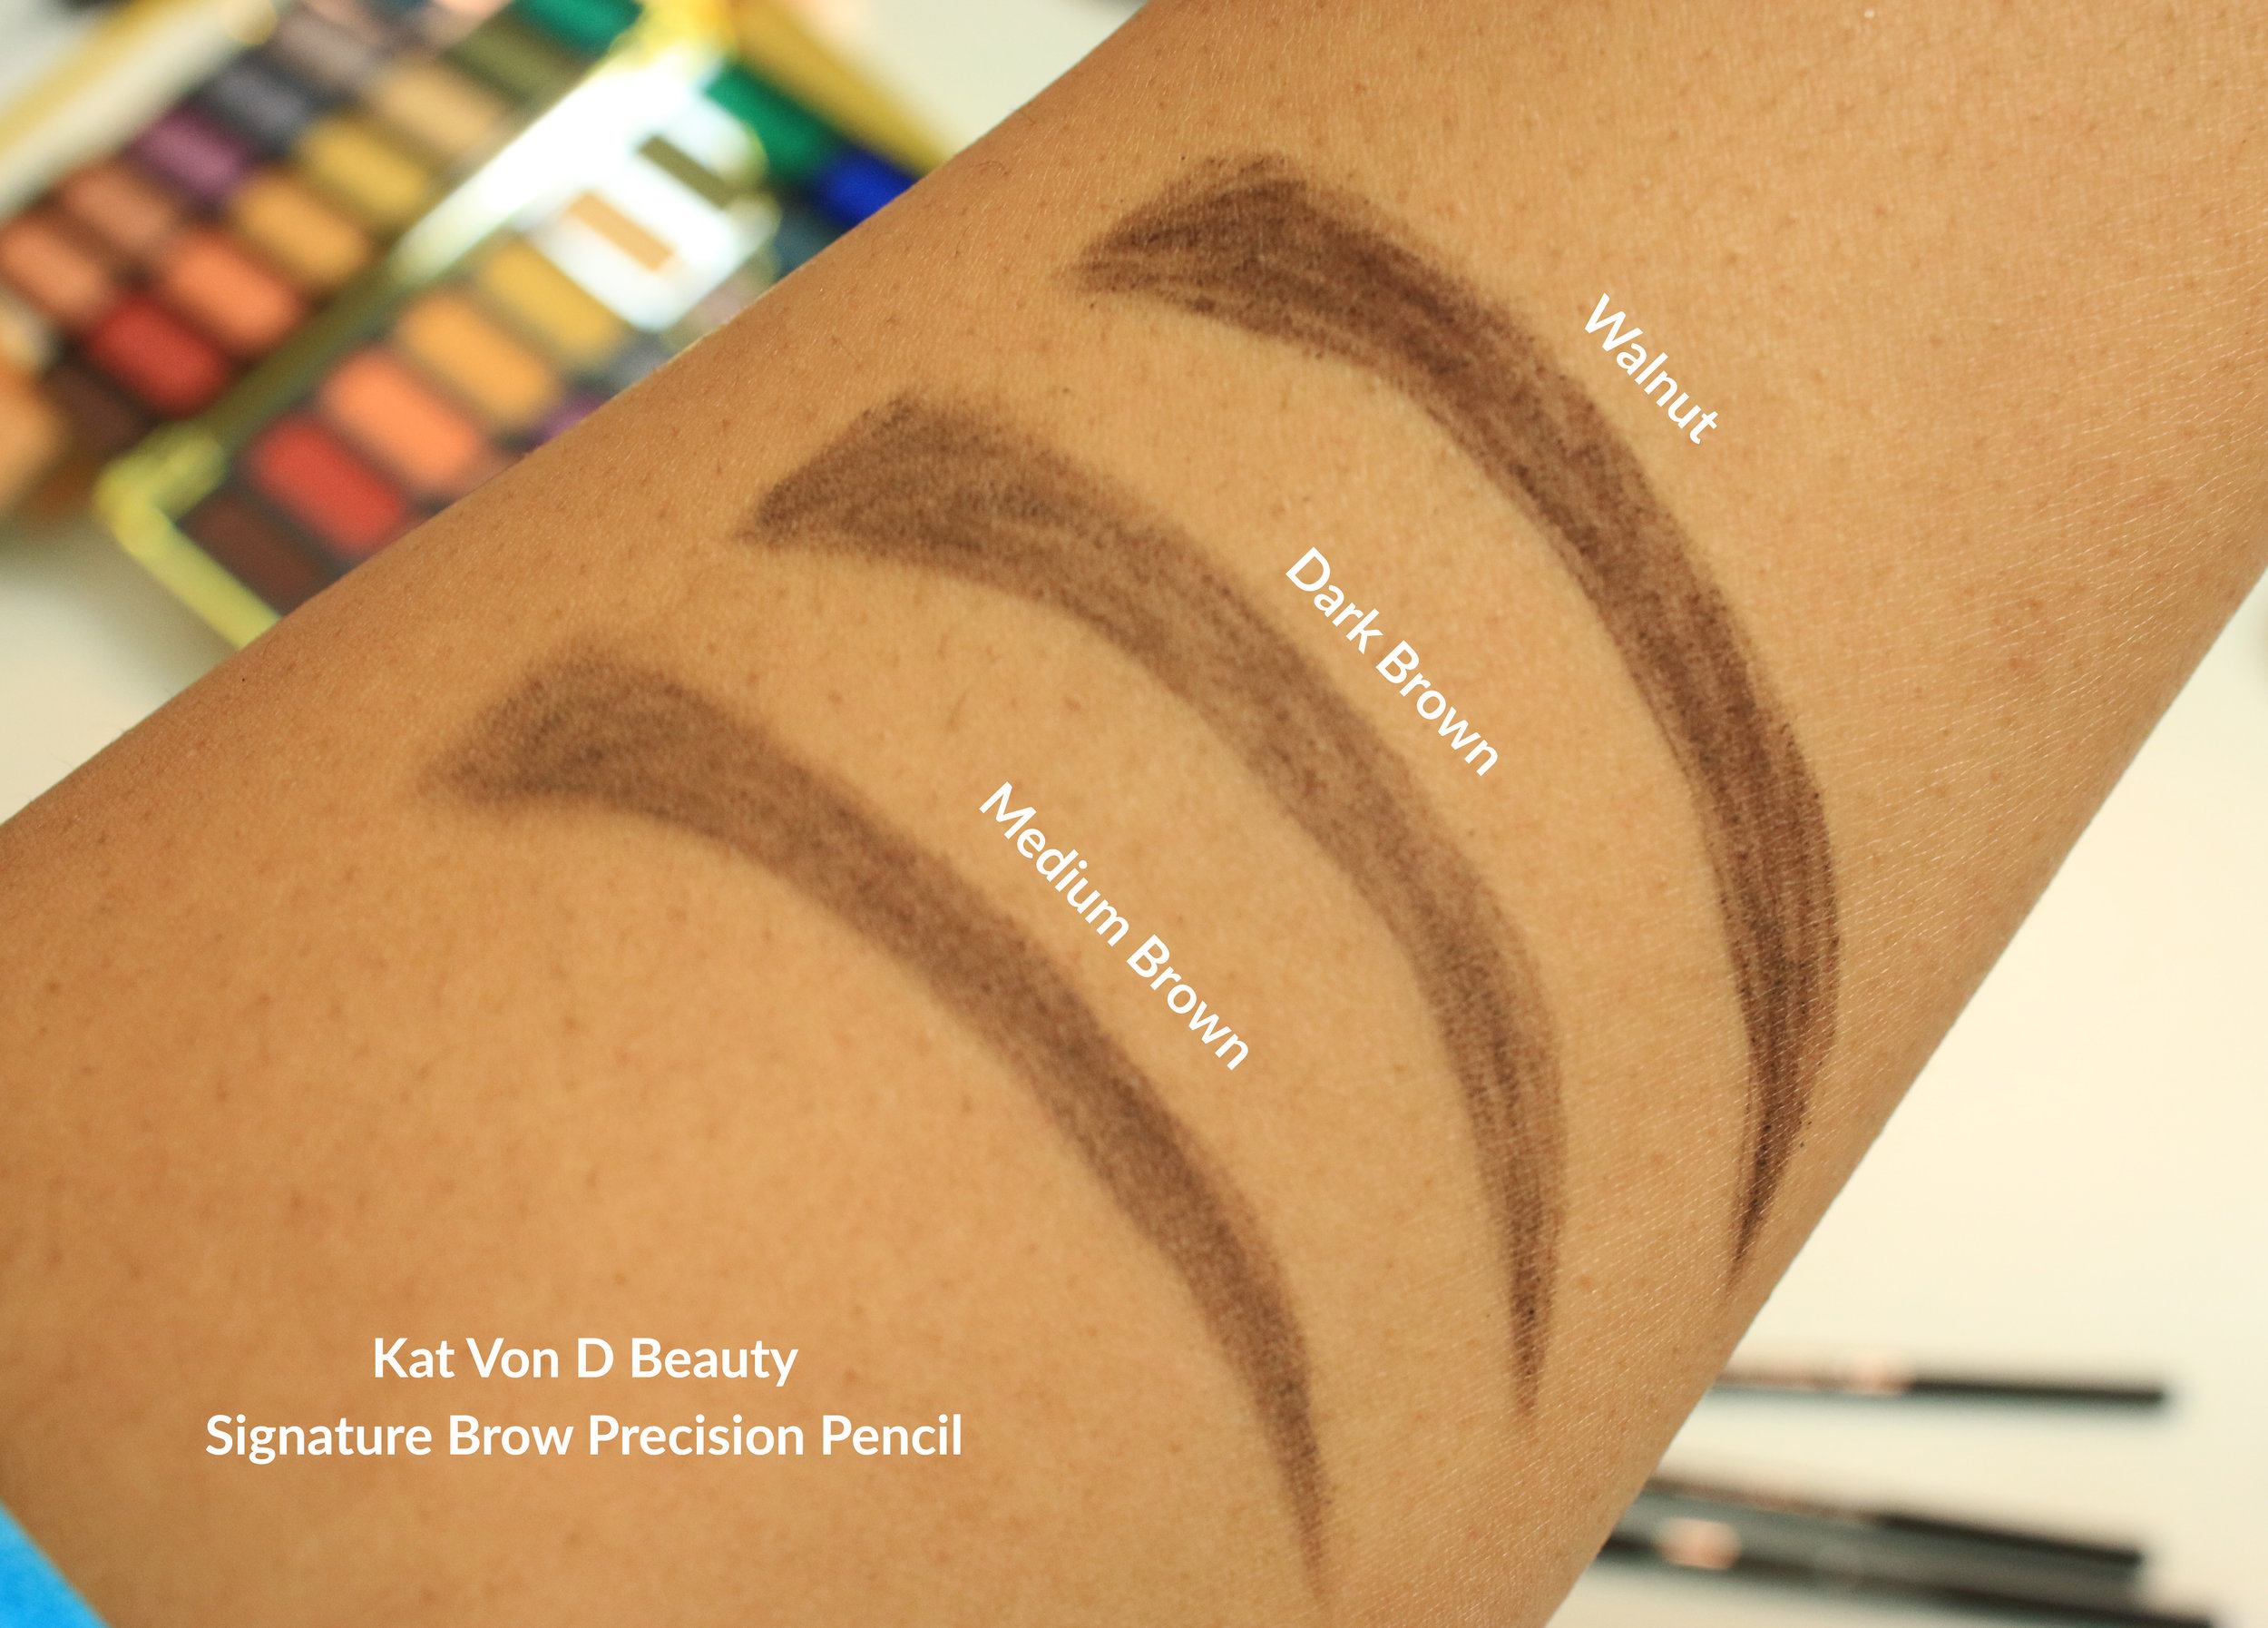 Kat Von D Beauty Signature Brow Precision Pencil Candy Coated Closets.jpg